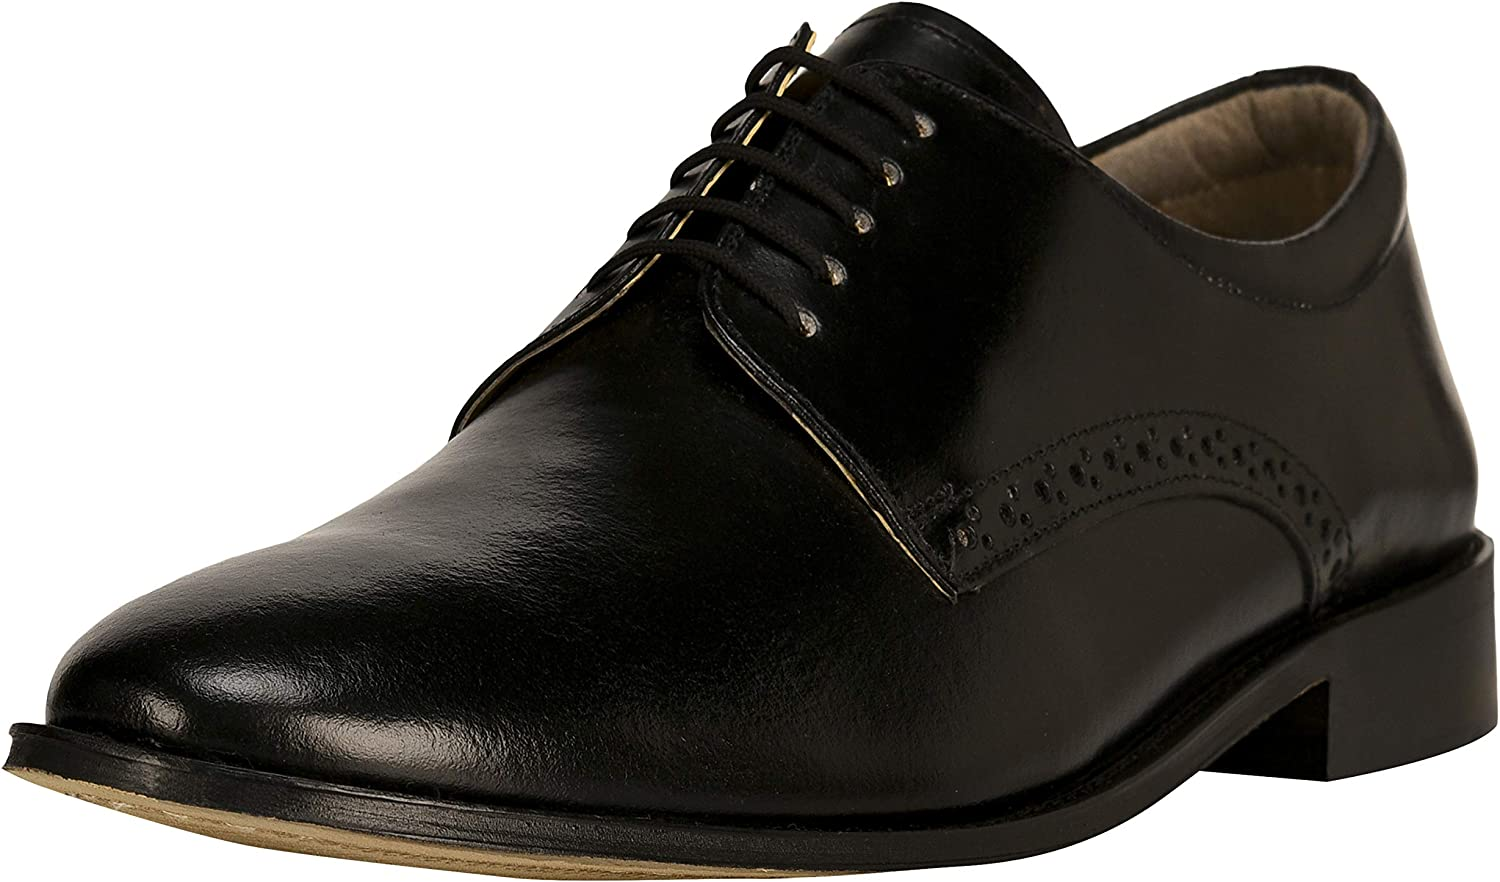 LIBERTYZENO Oxford Dress Shoes for Men Formal Business Shoes Genuine Leather